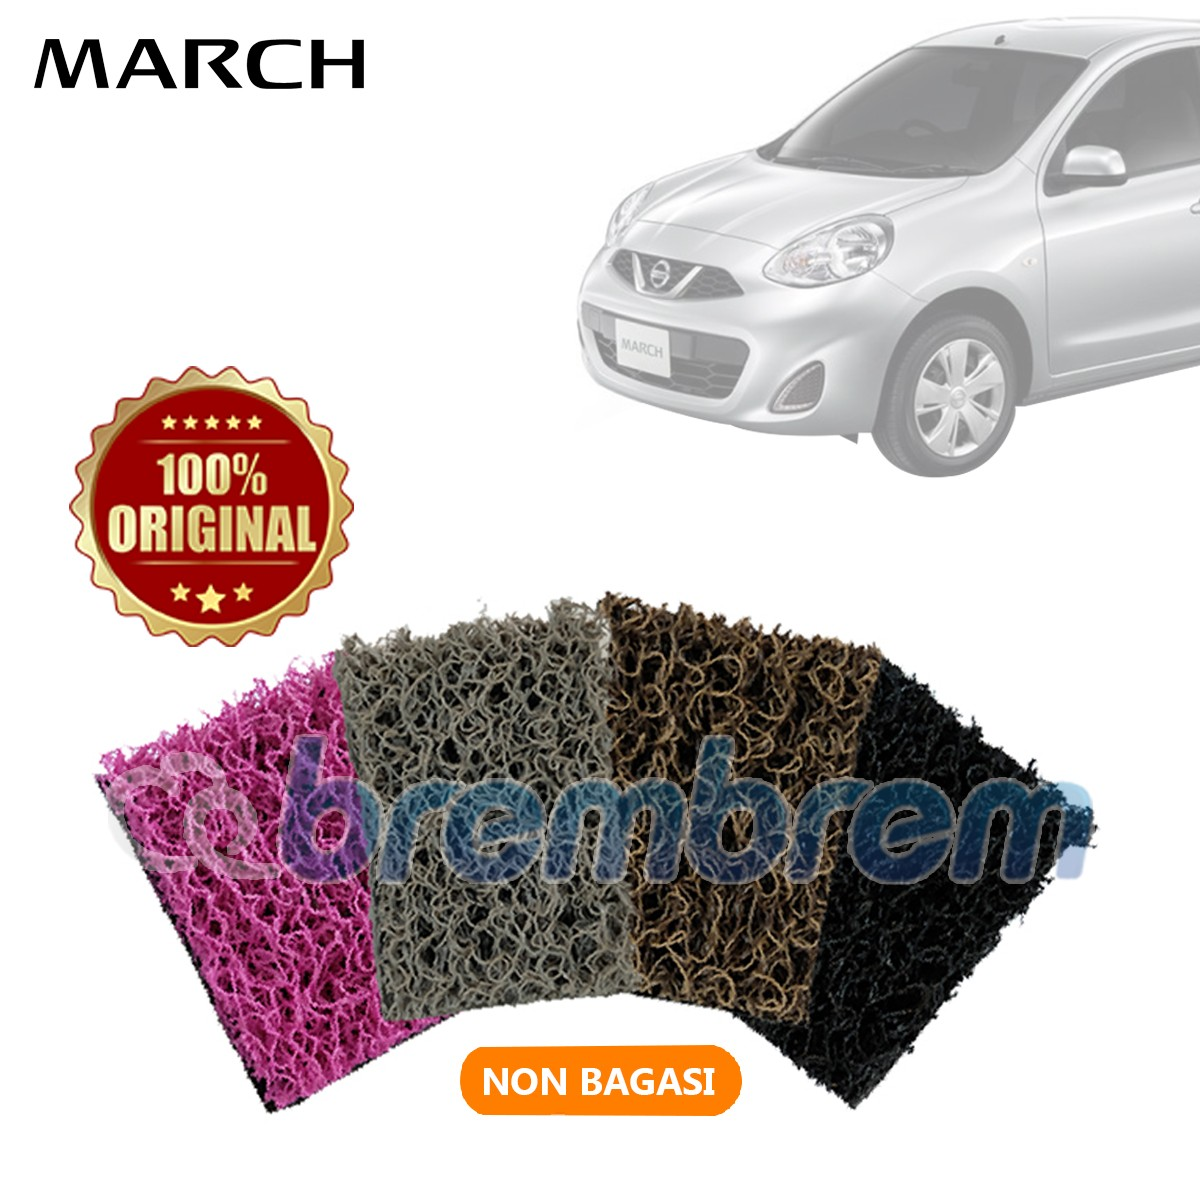 KARPET COMFORT DELUXE NON BAGASI NISSAN ALL NEW MARCH